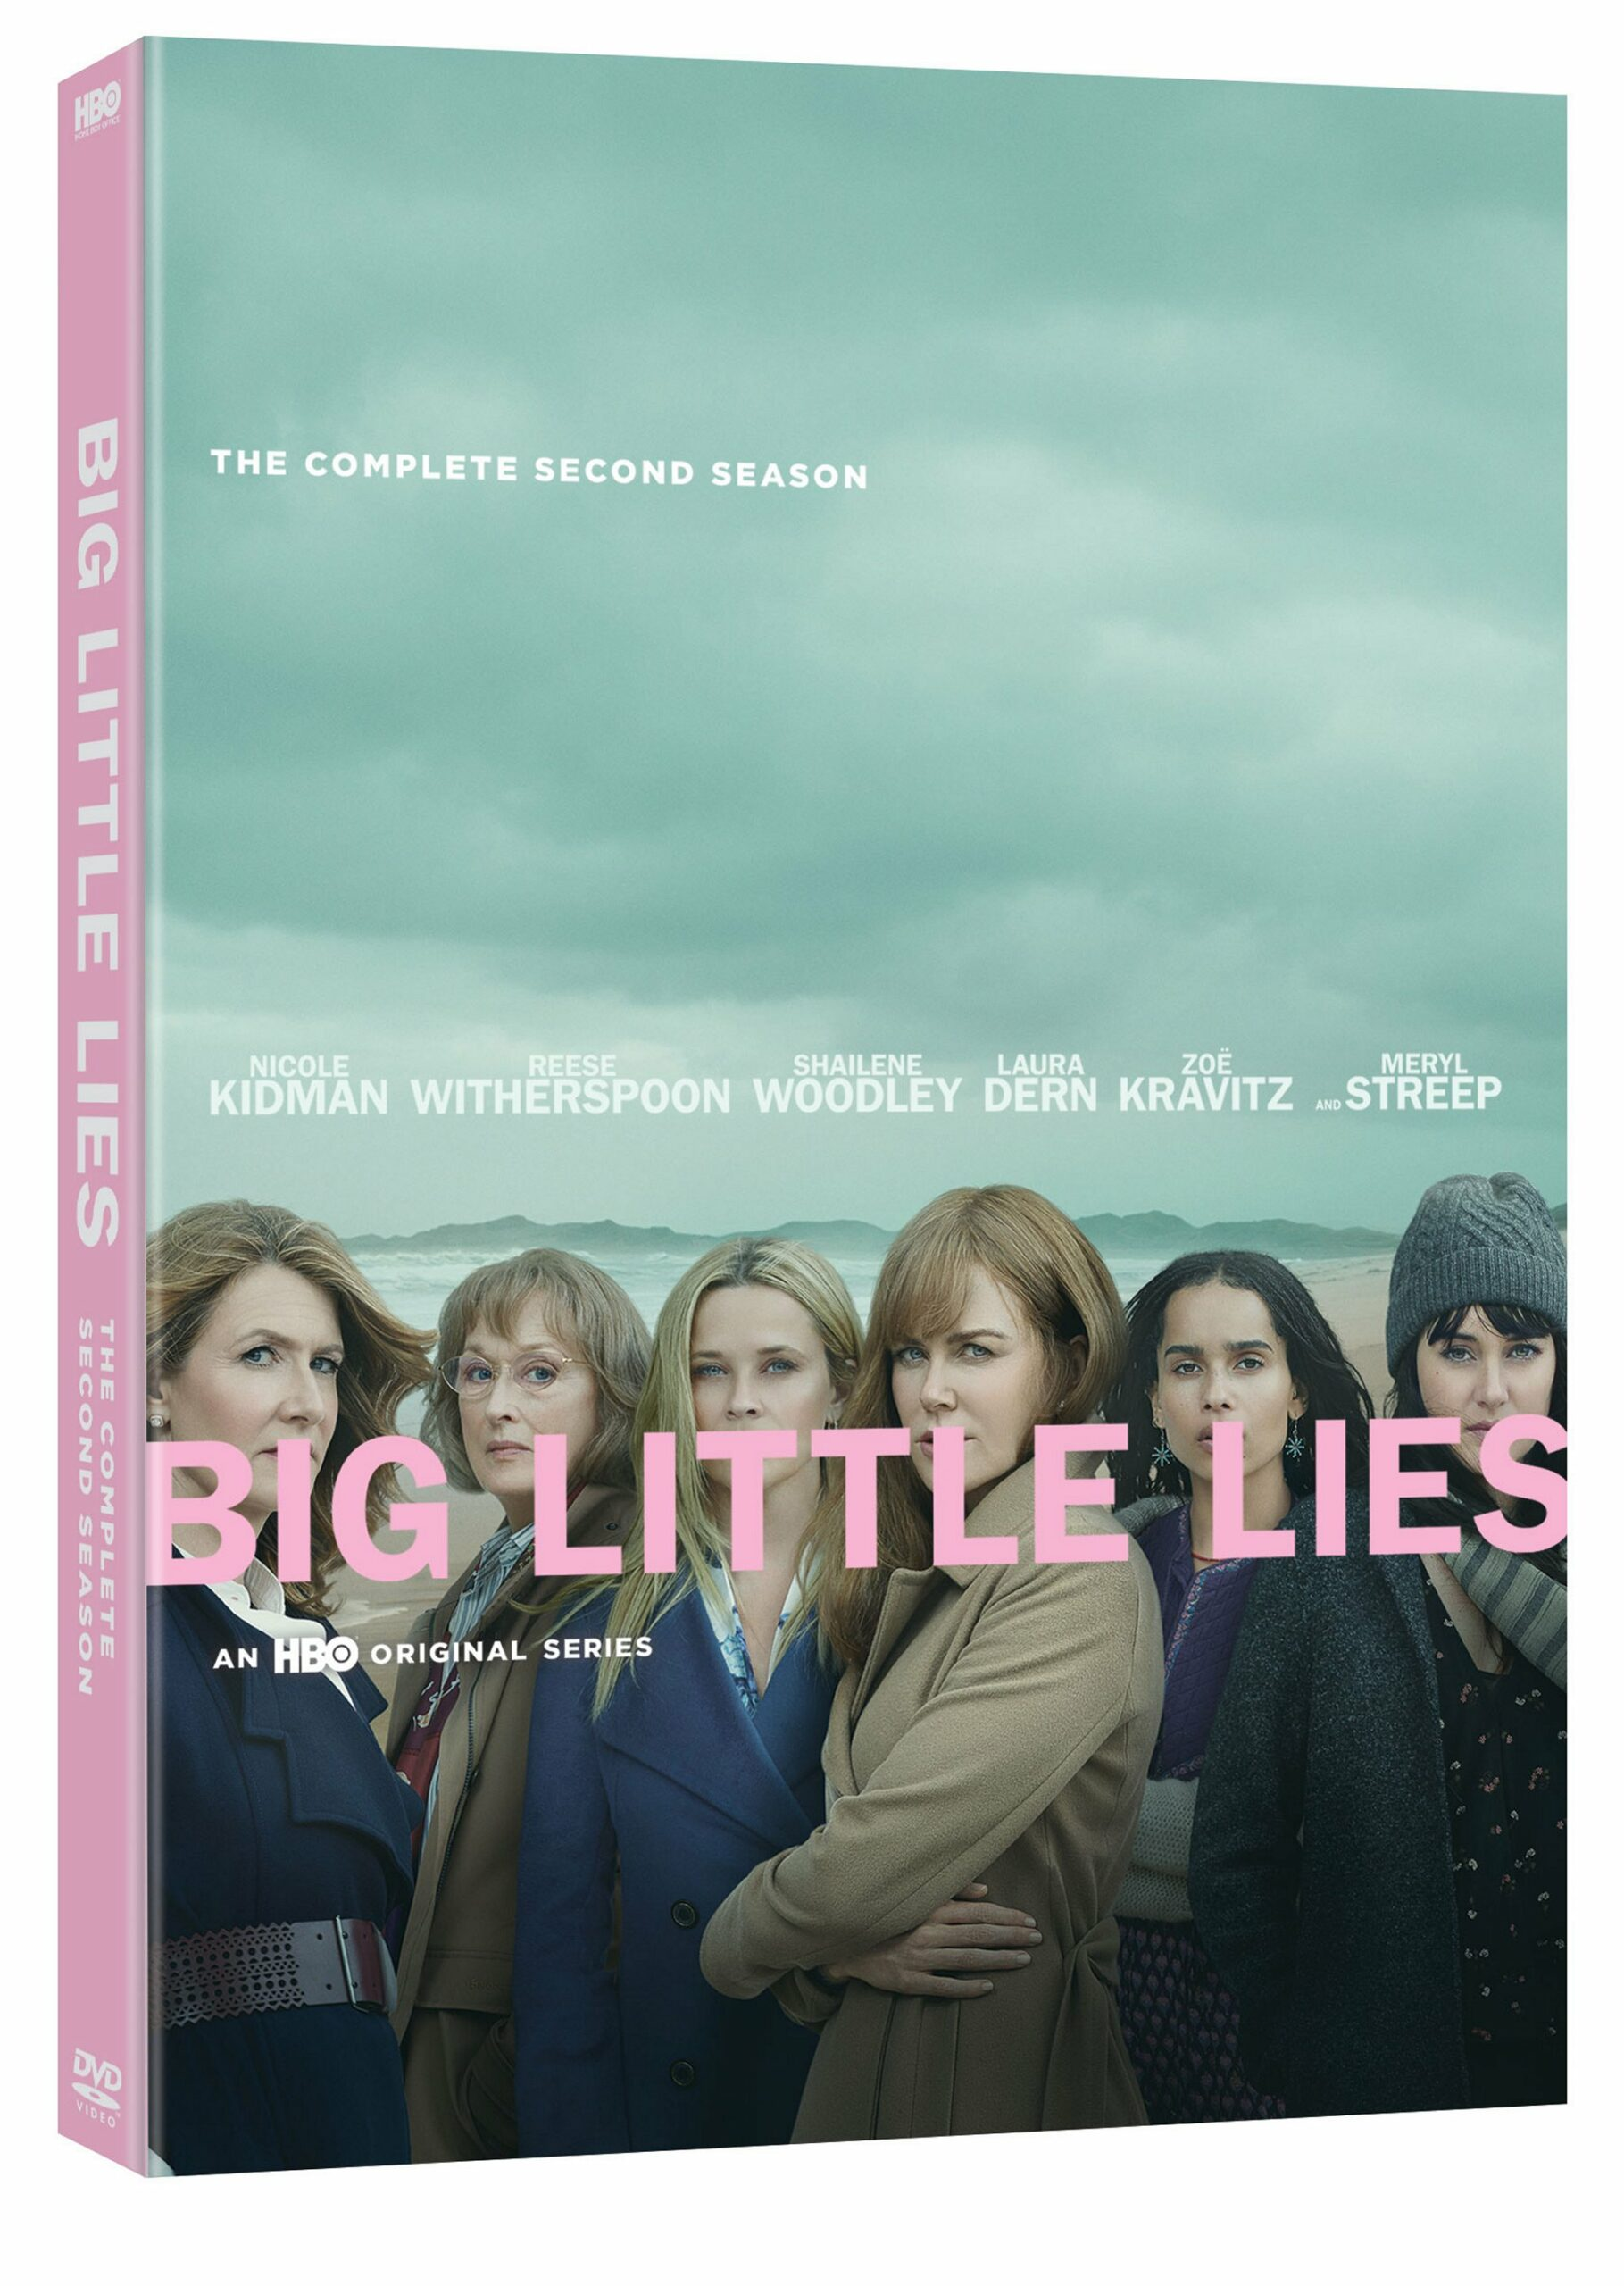 Big Little Lies Season 2 Available to Own, Host A Watch Party for Your Girlfriends